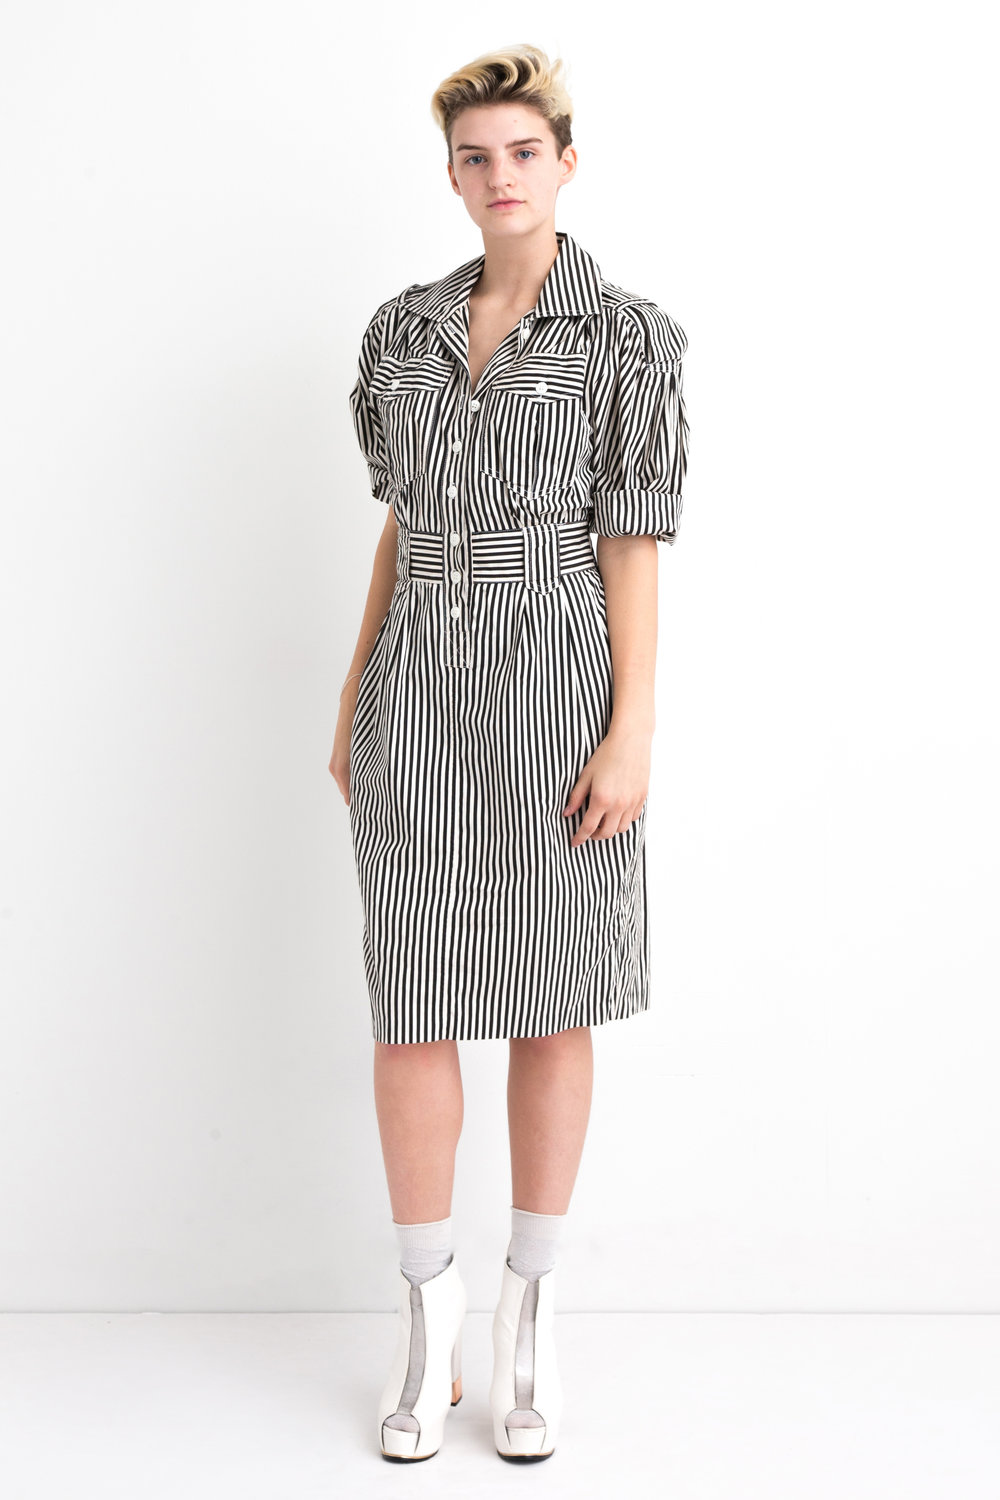 80s Black and White Striped Dress — DEAD